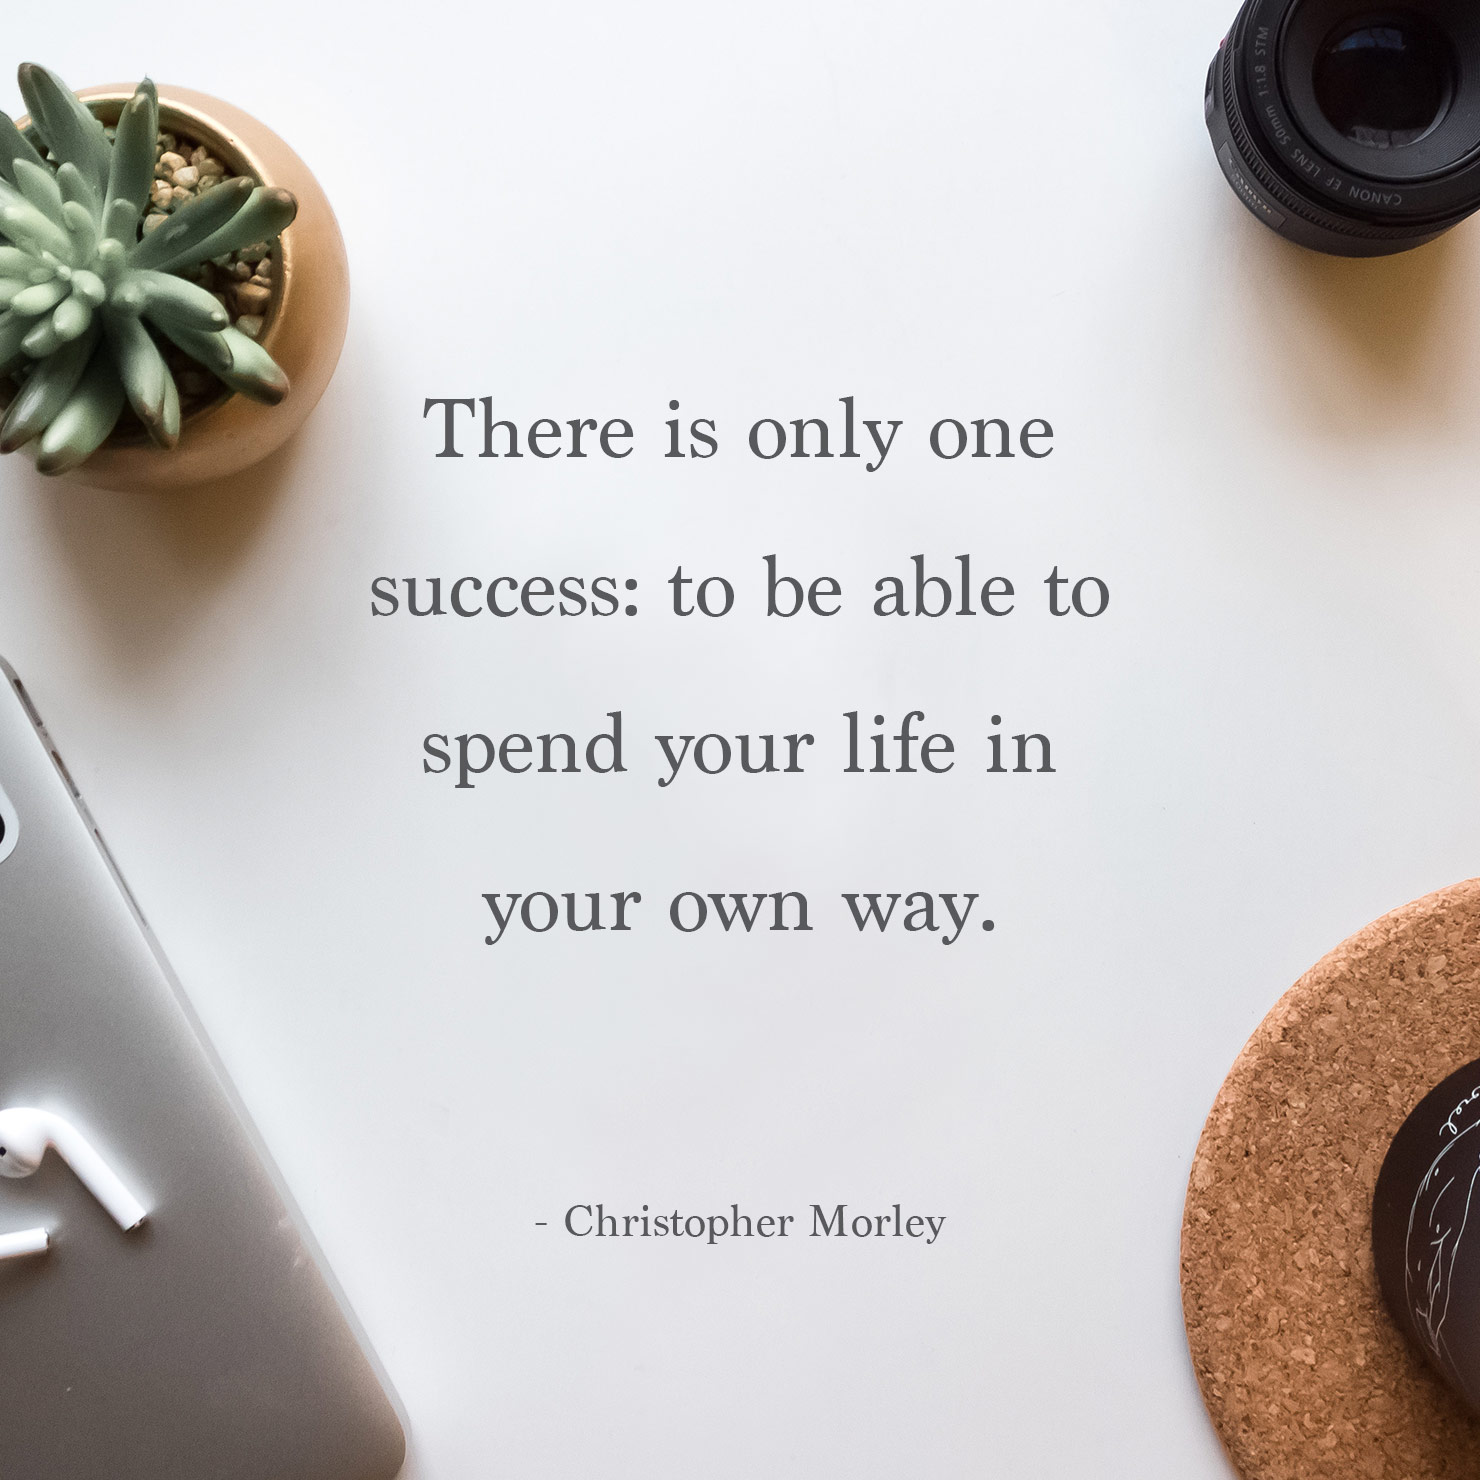 for son graduation quote: there is only one success; to be able to spend your life in your own way - Christopher Morley